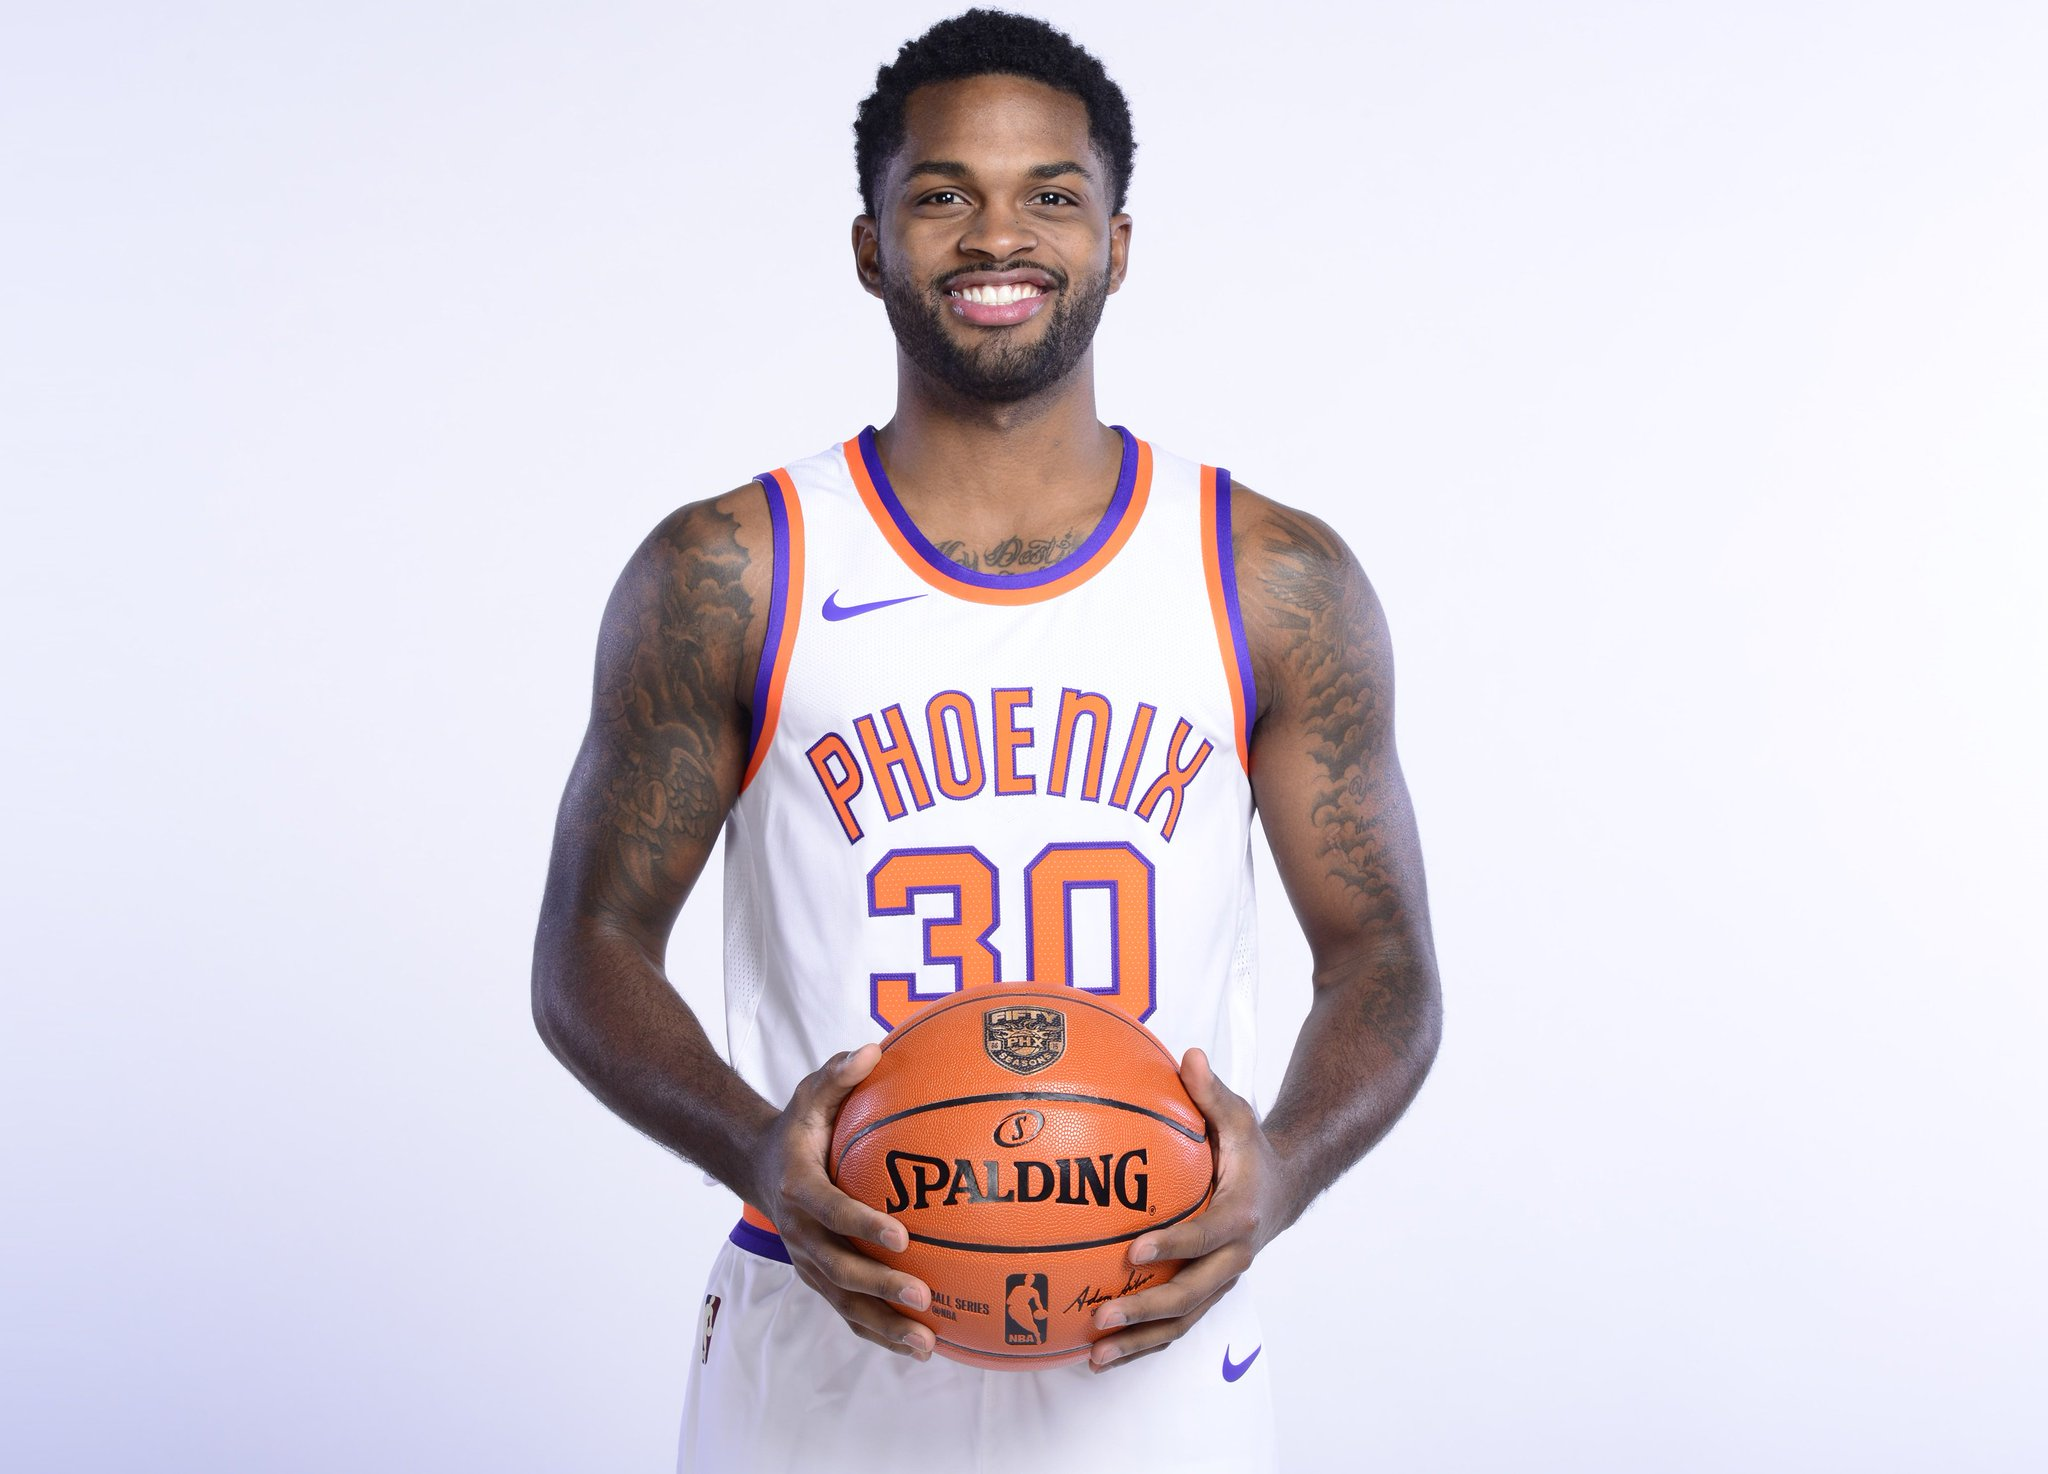 Join us in wishing @troydaniels of the @Suns a HAPPY 27th BIRTHDAY!   #NBABDAY #SunsAt50 https://t.co/5rxAU8ZecU